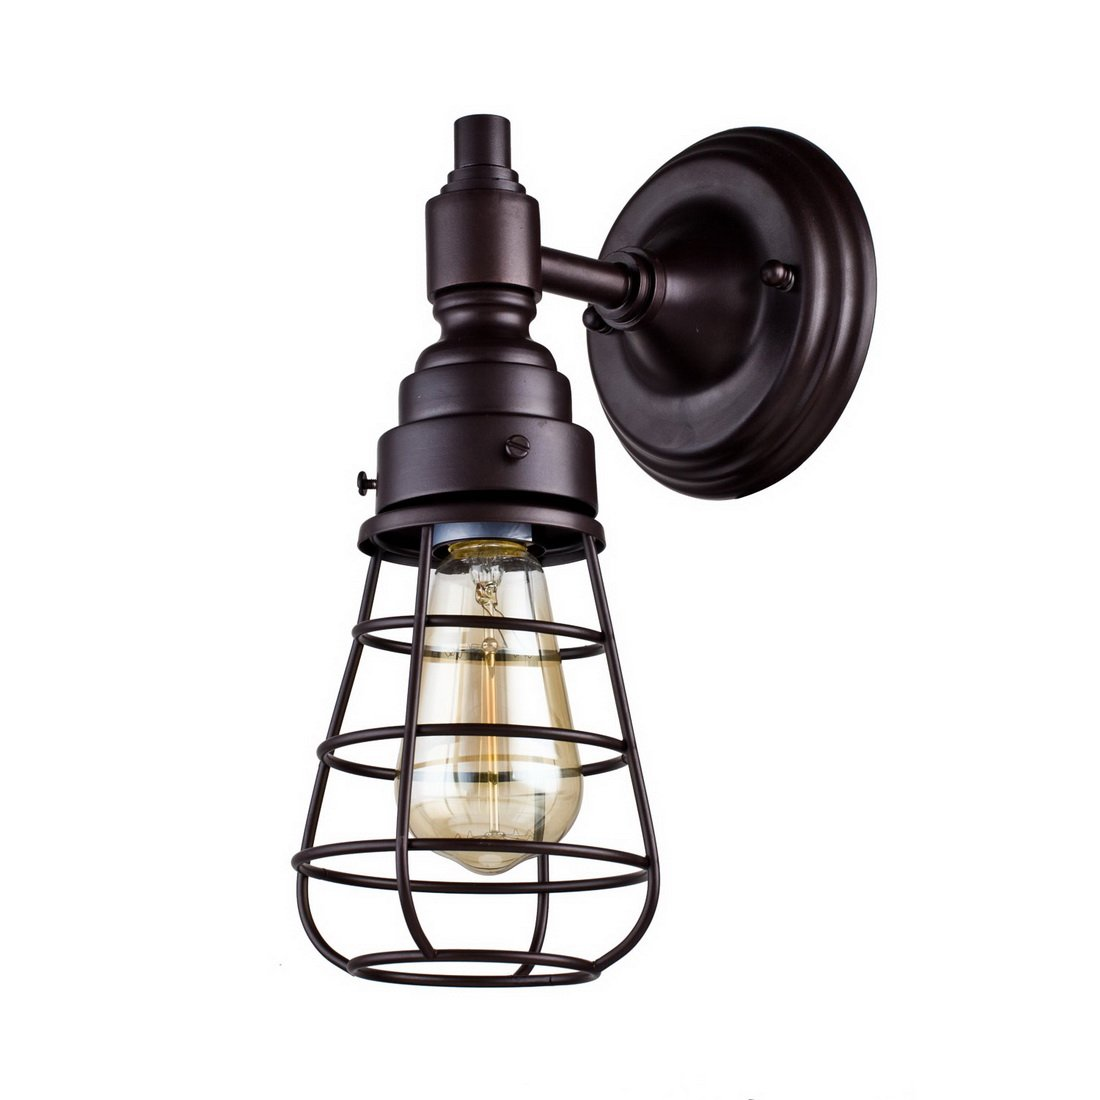 AXILAND Industrial Mini Wire Cage Wall Sconce 1 Light Simplicity Lamp, Oil Rubbed Bronze